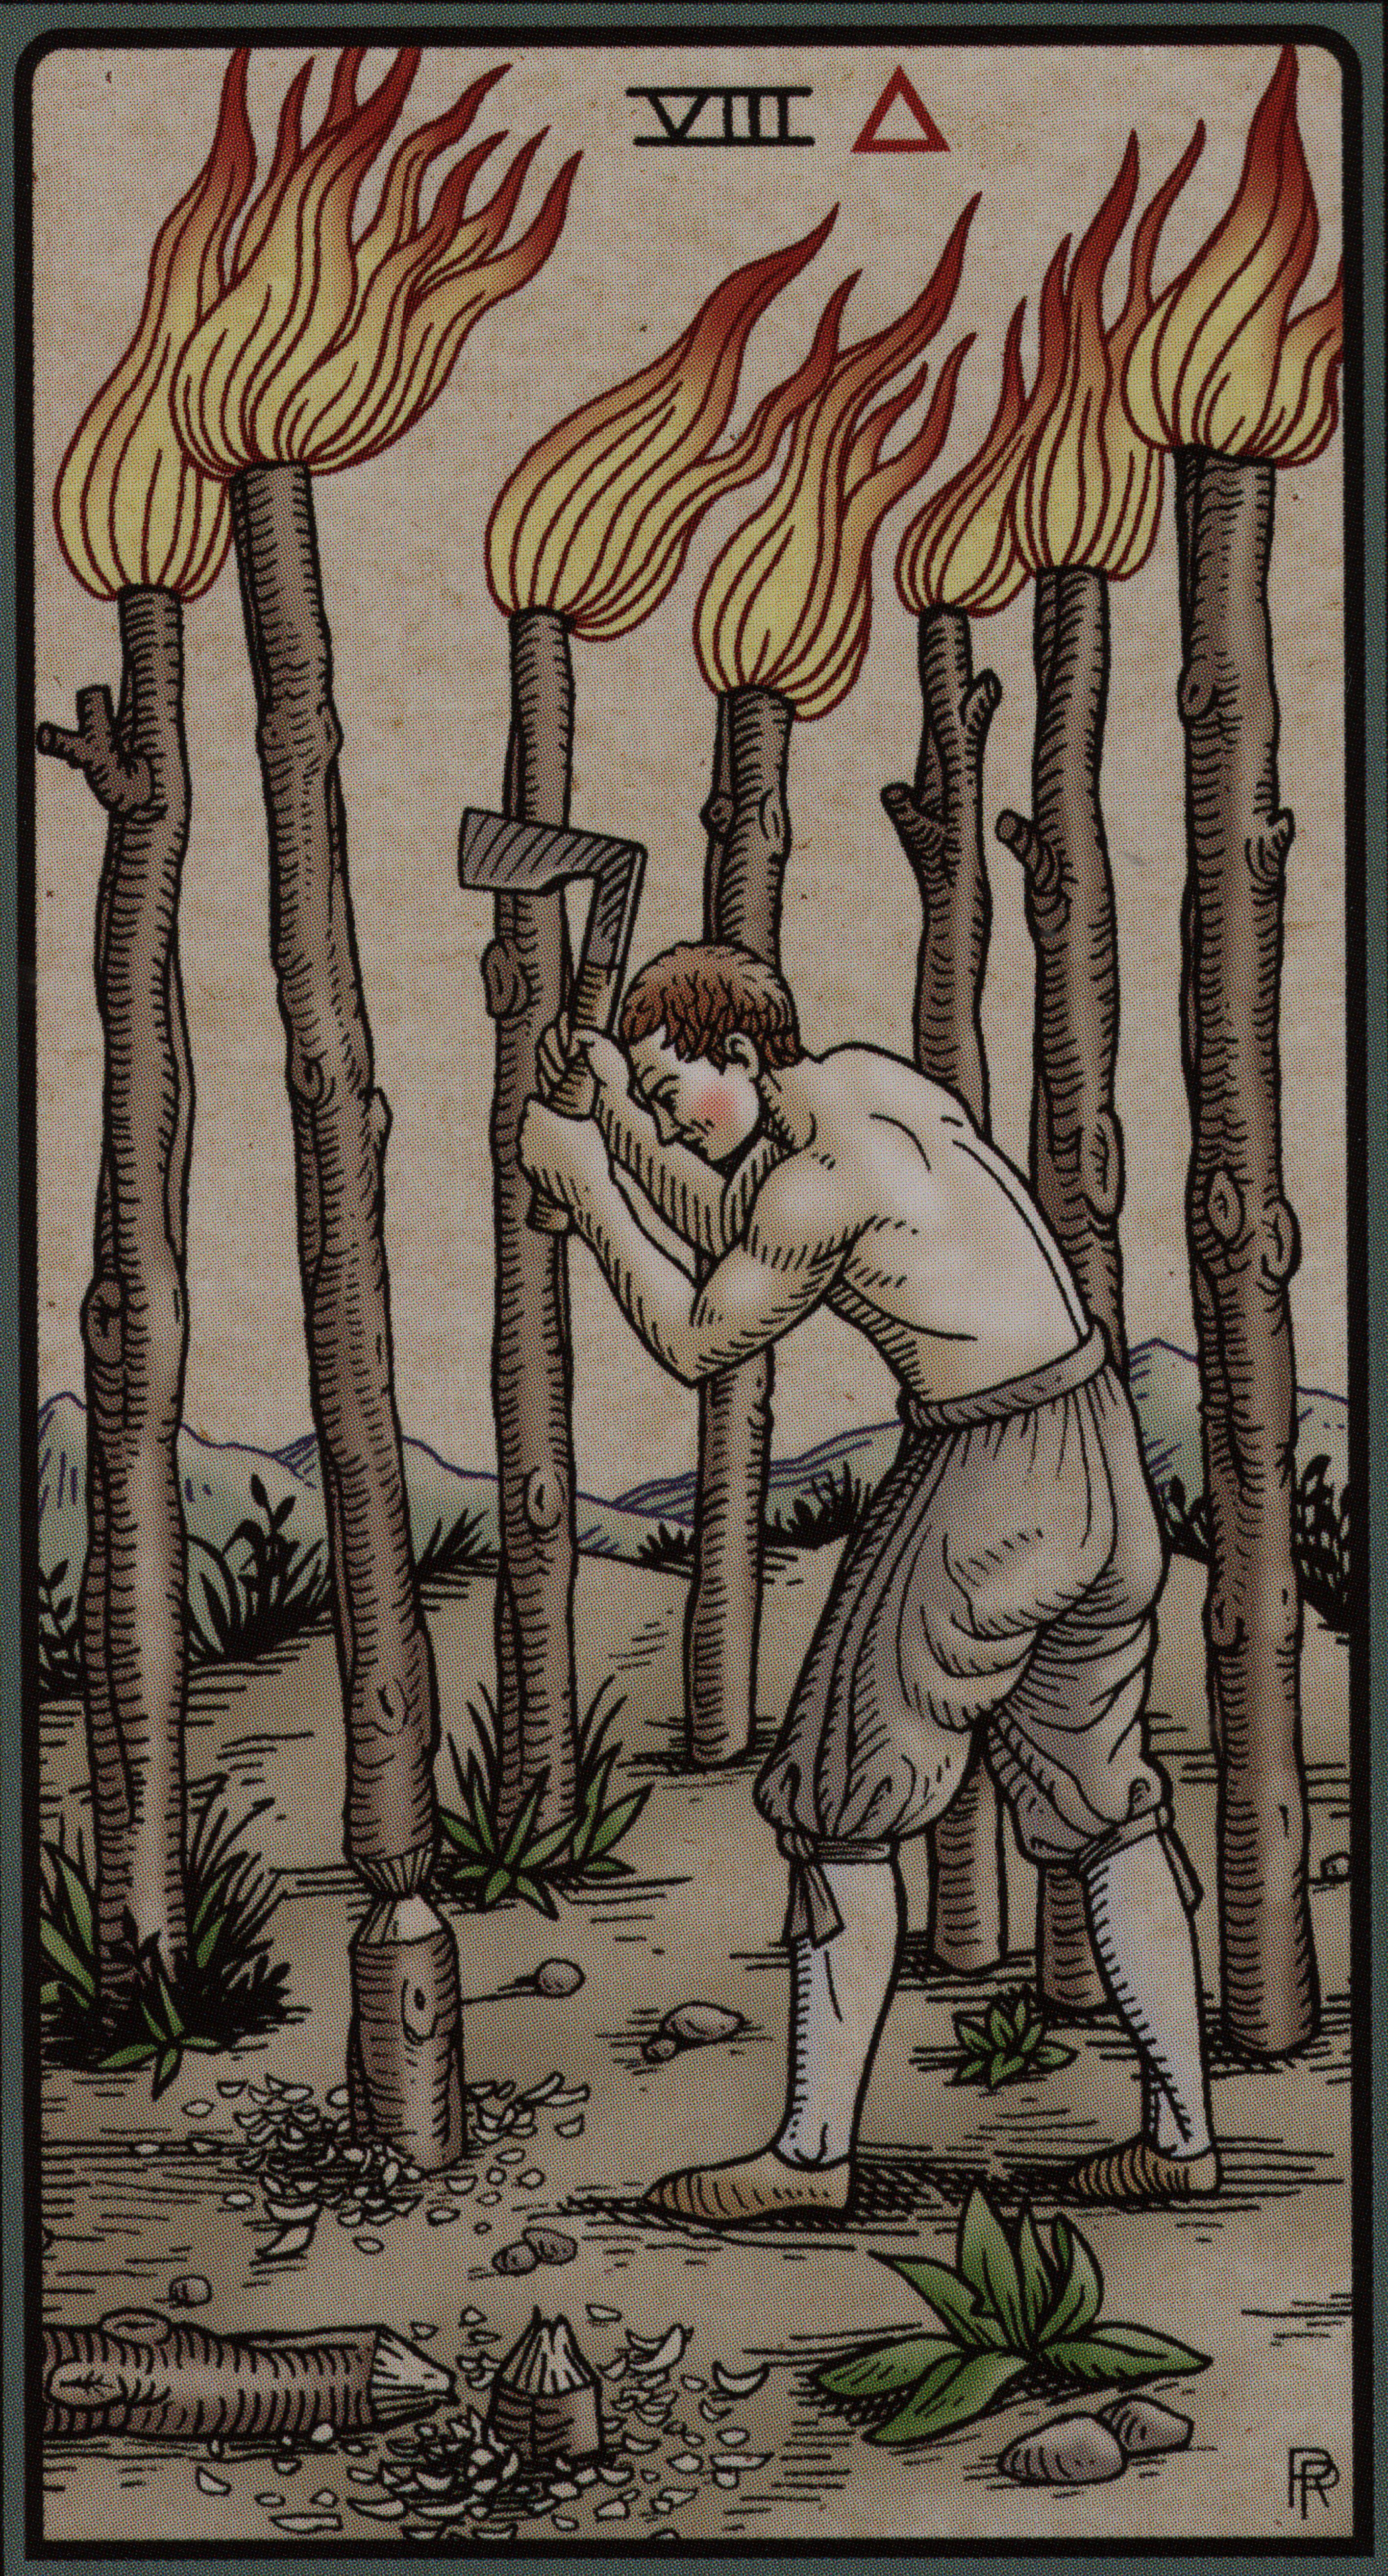 Alchemical Tarot: The Eight of Staffs